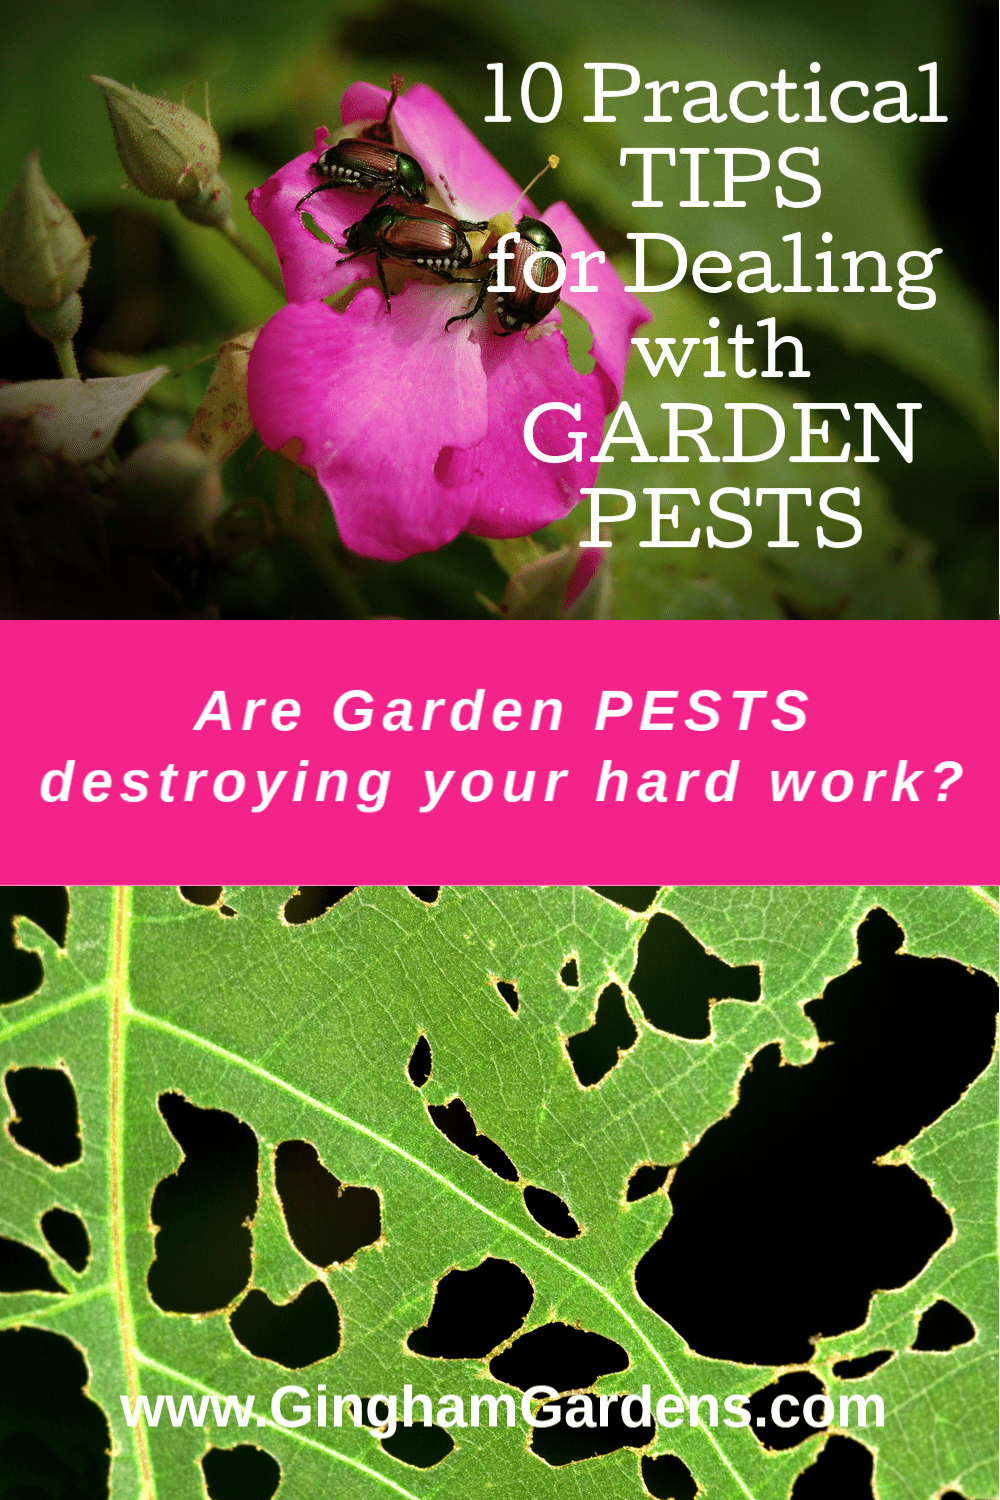 Images of bugs eating garden plants with text overlay - 10 practical tips for dealing with Garden Pests